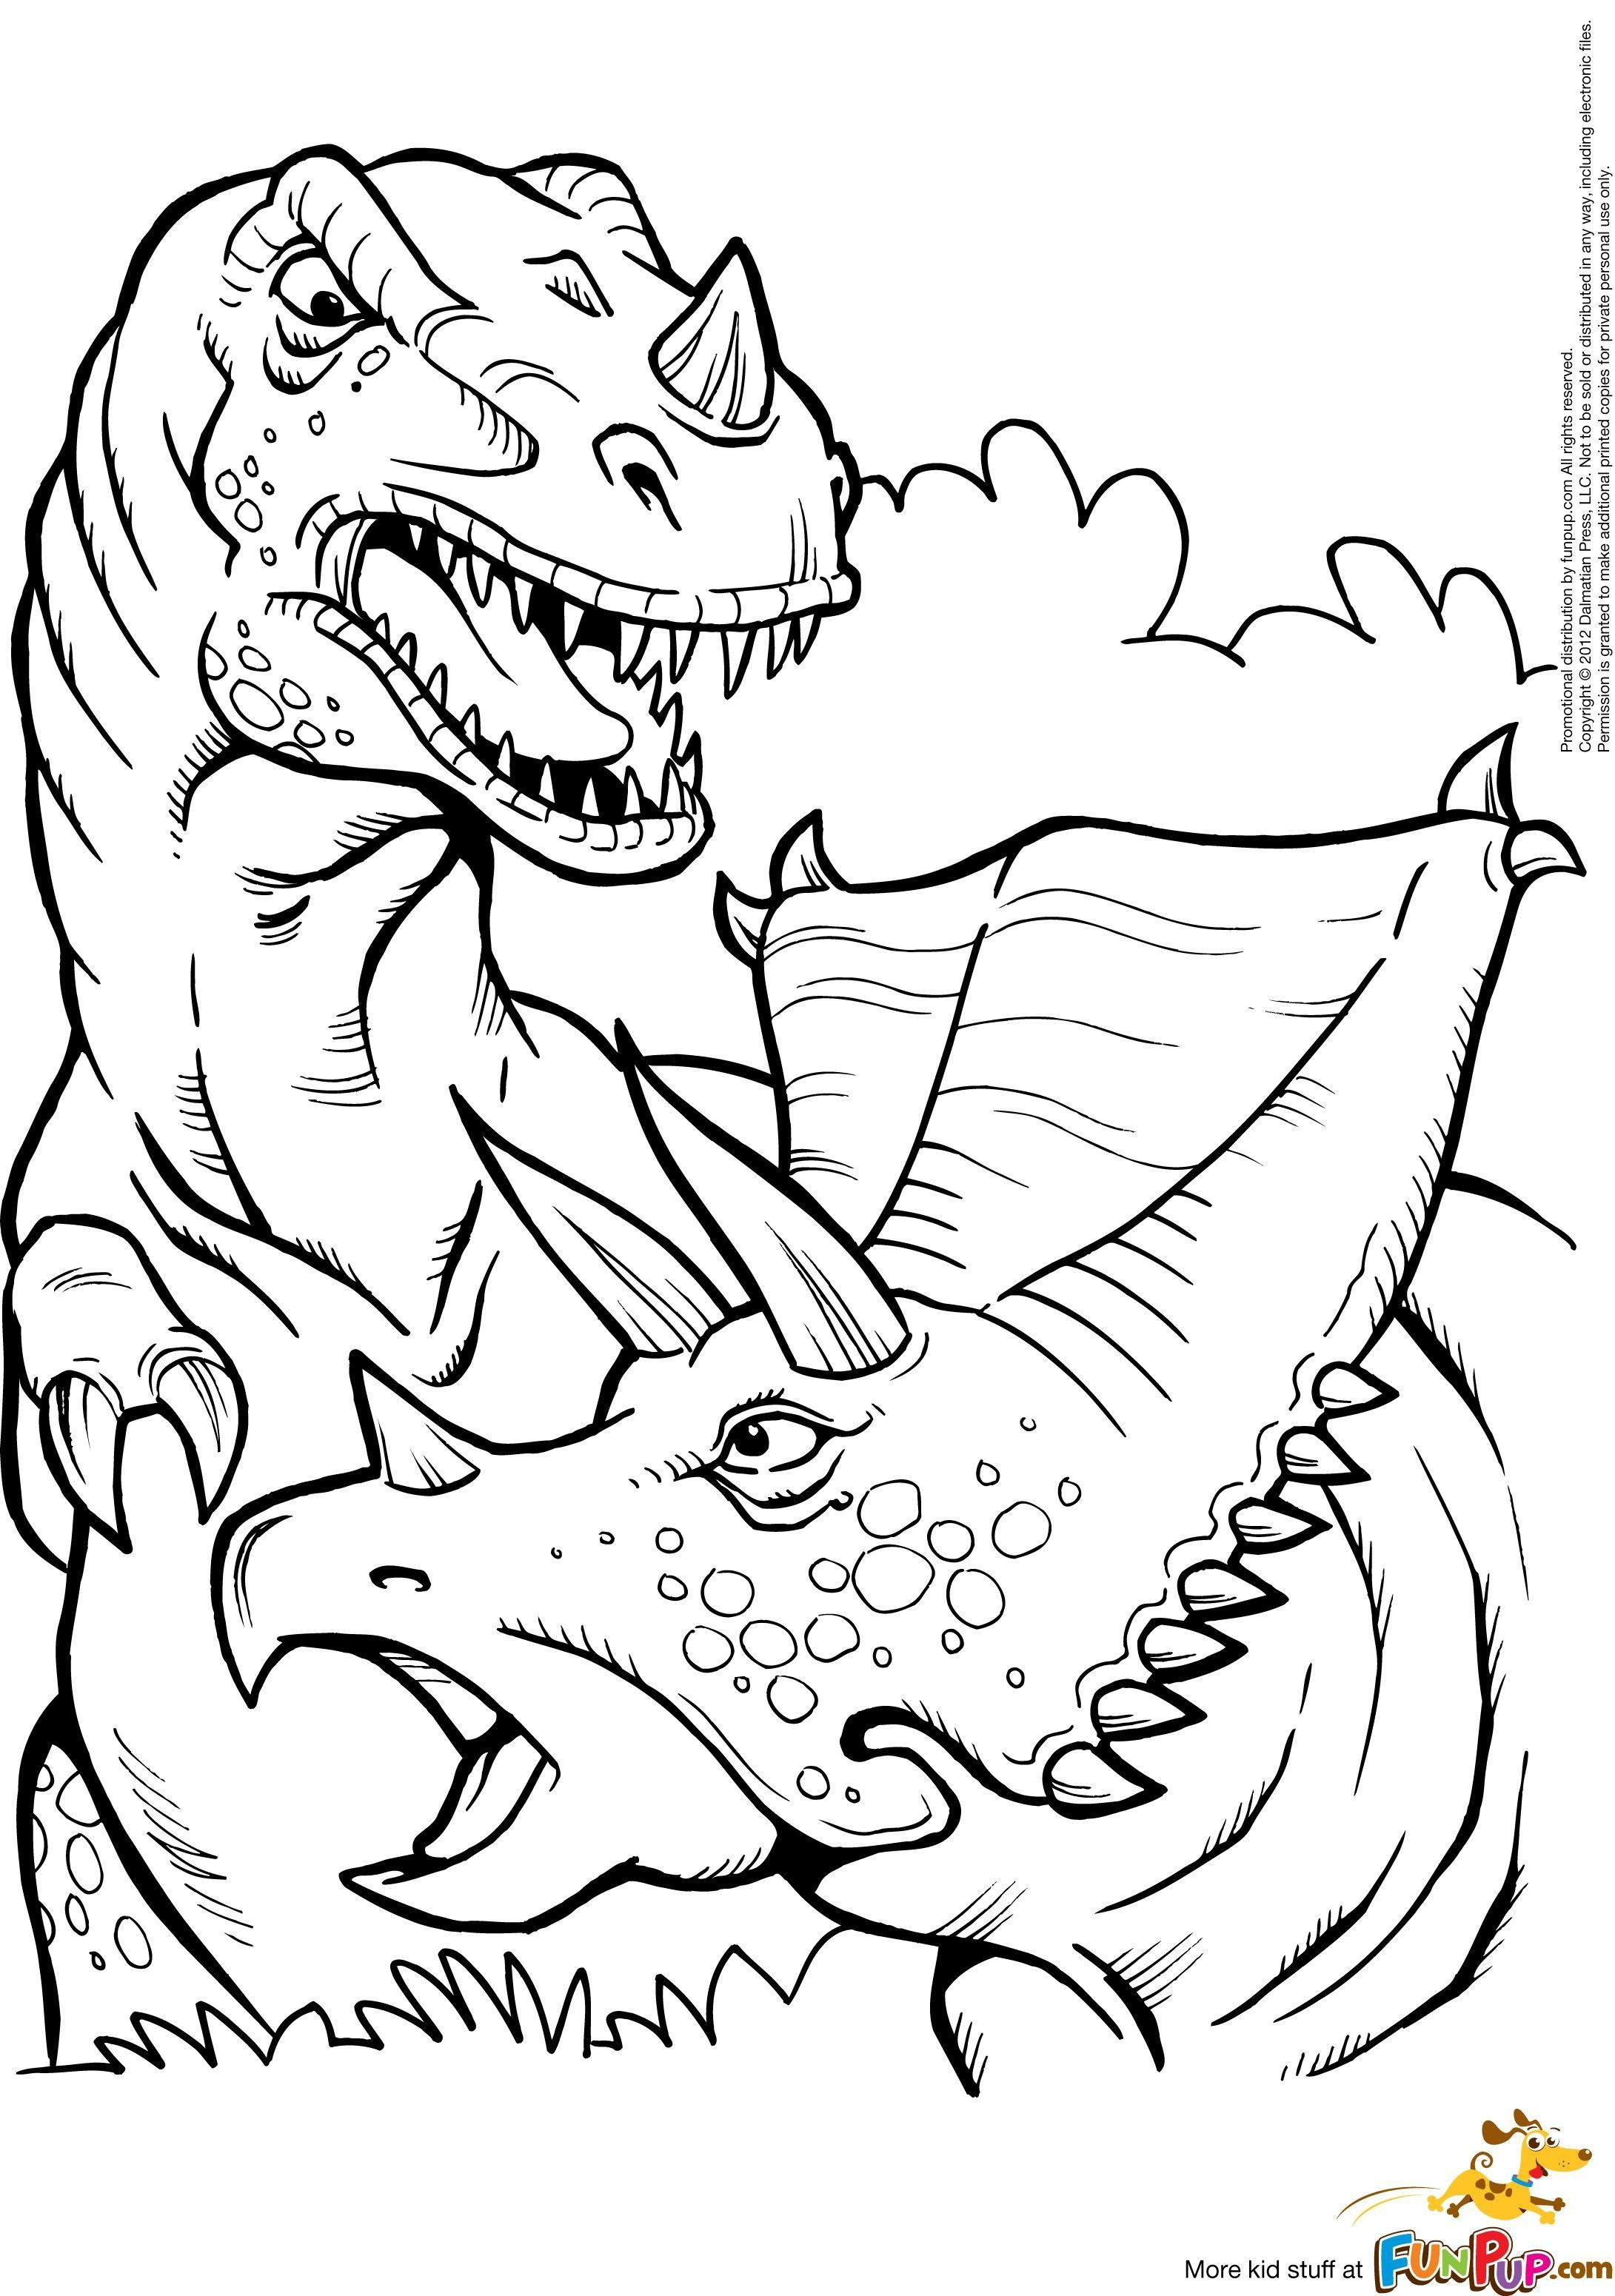 Dinosaurs #coloring #pages | Dinosaurs Coloring Pages